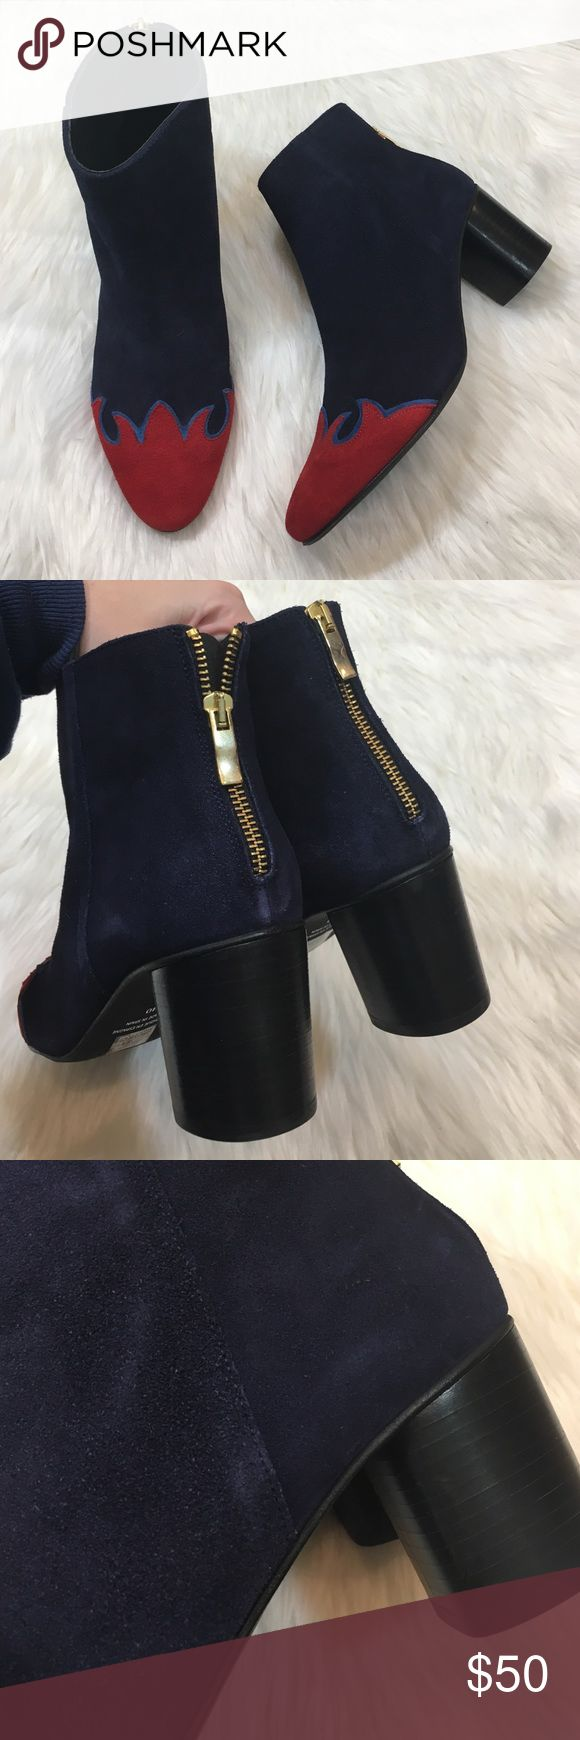 NEW Free People navy blue suede Adele booties Brand new never worn. Size 40. Some spots with lightened Suede as pictured from storage but not noticeable! In my opinion they fit like a 9 but please check free people's sizing chart to see if this size is best for you! Free People Shoes Ankle Boots & Booties